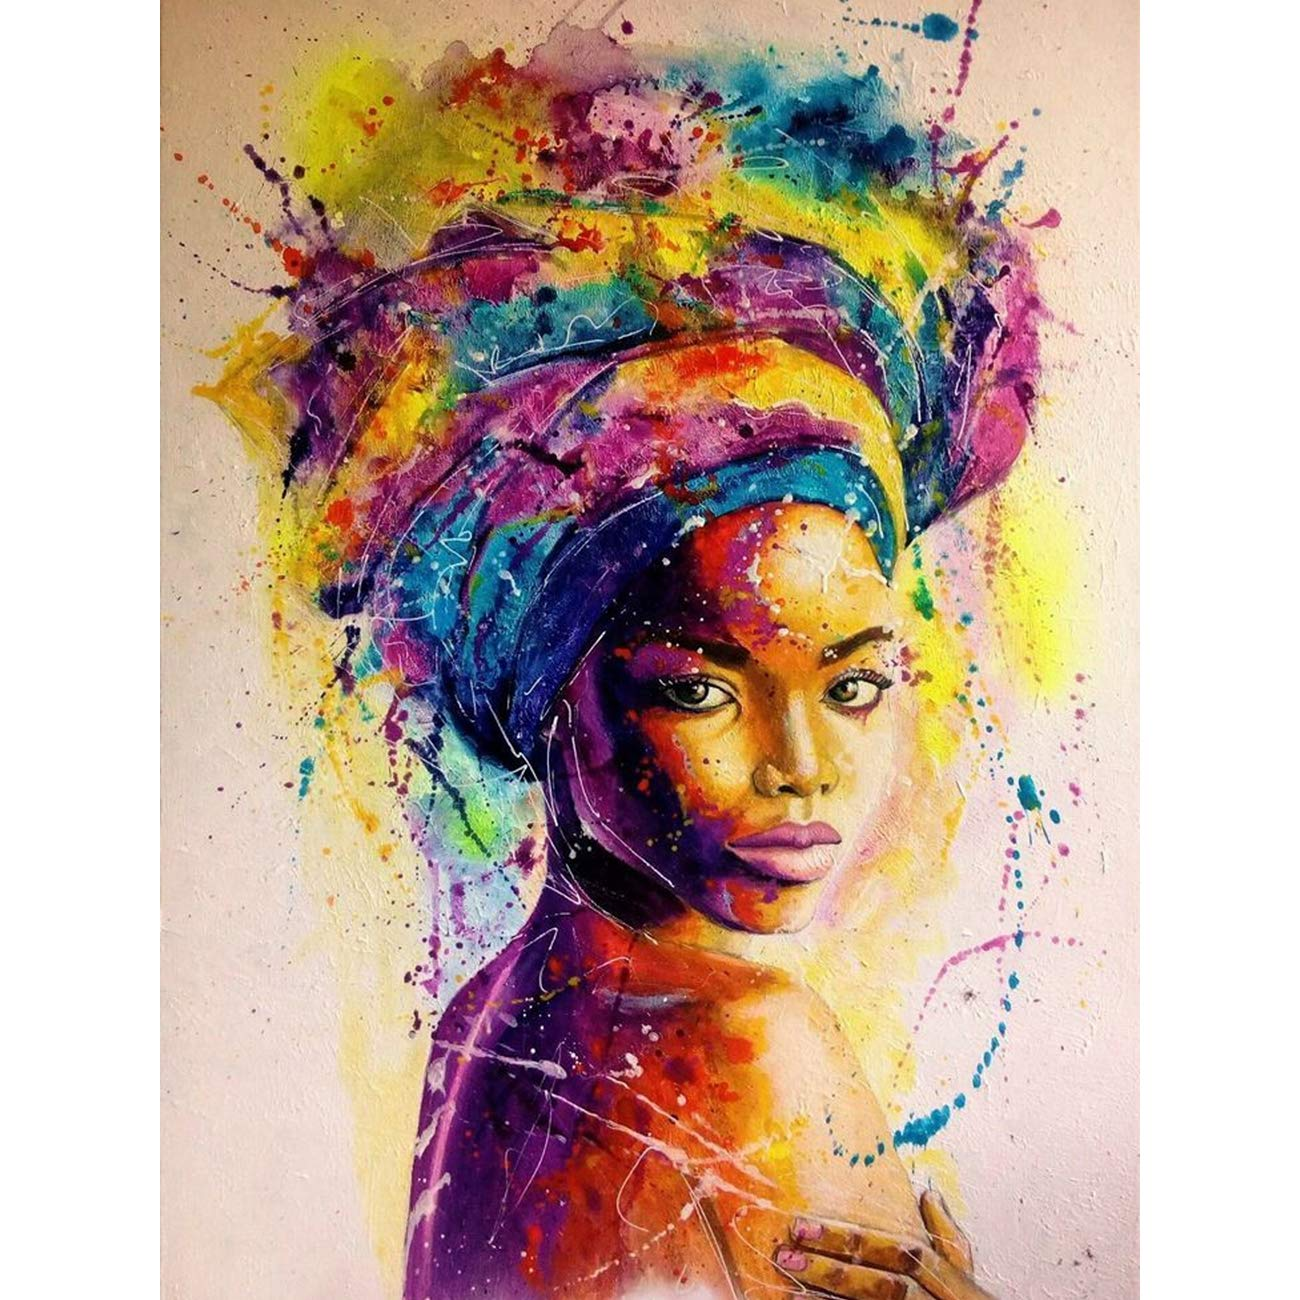 5D Diamond Painting Watercolor Paintings of African Women Full Drill by Number Kits for Adults Kids, SKRYUIE DIY Rhinestone Pasted Paint with Diamond Set Arts Craft Decorations (12x16inch)